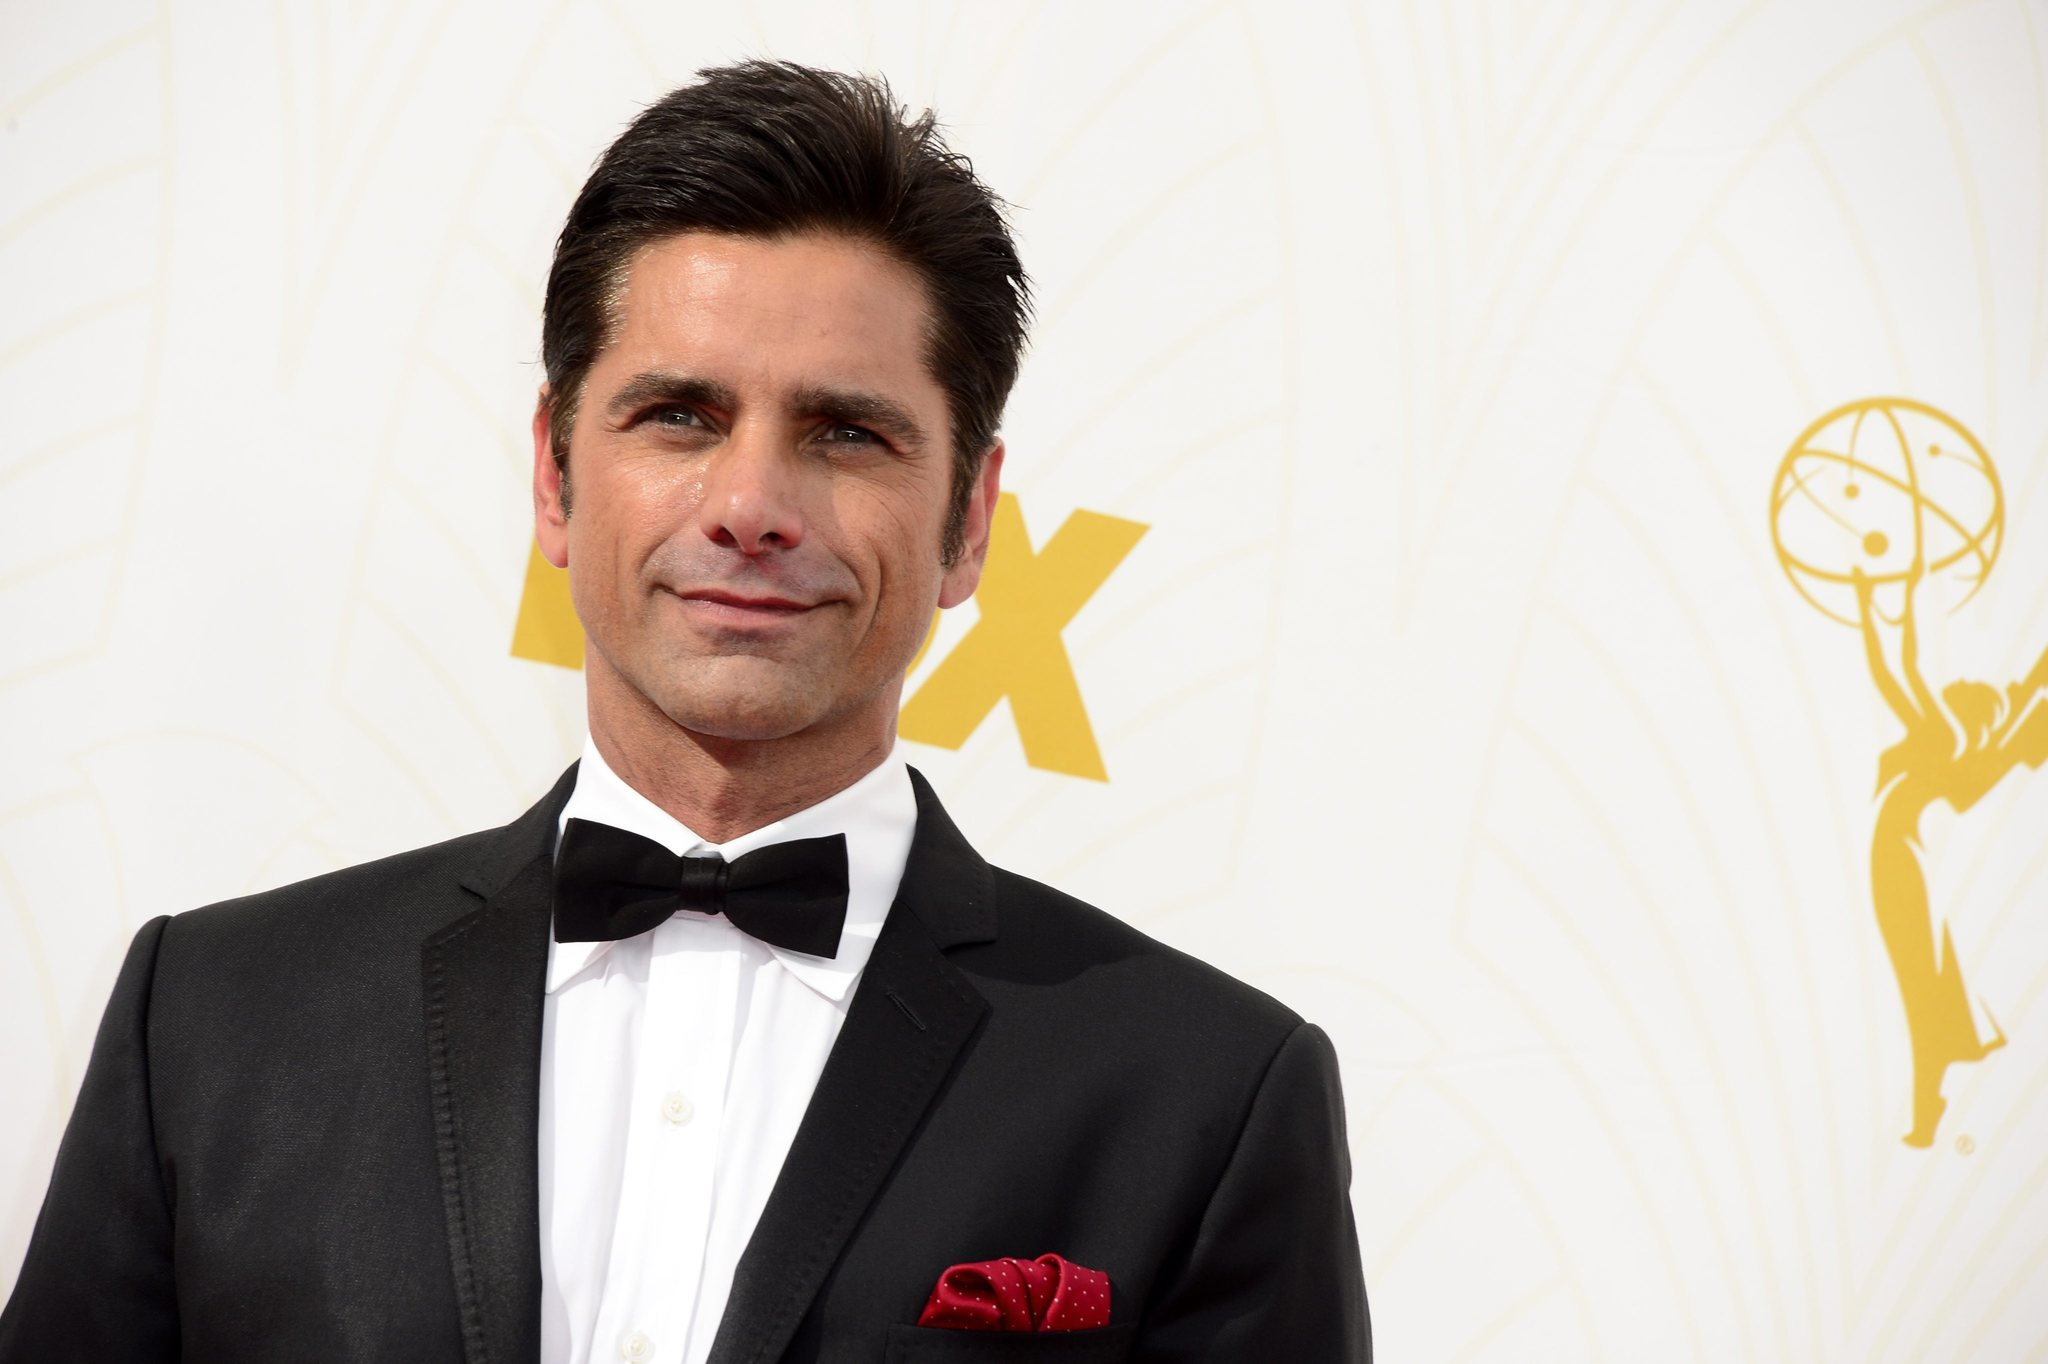 John Stamos Faces Up To 6 Months In Jail For Dui Charge Chicago Tribune